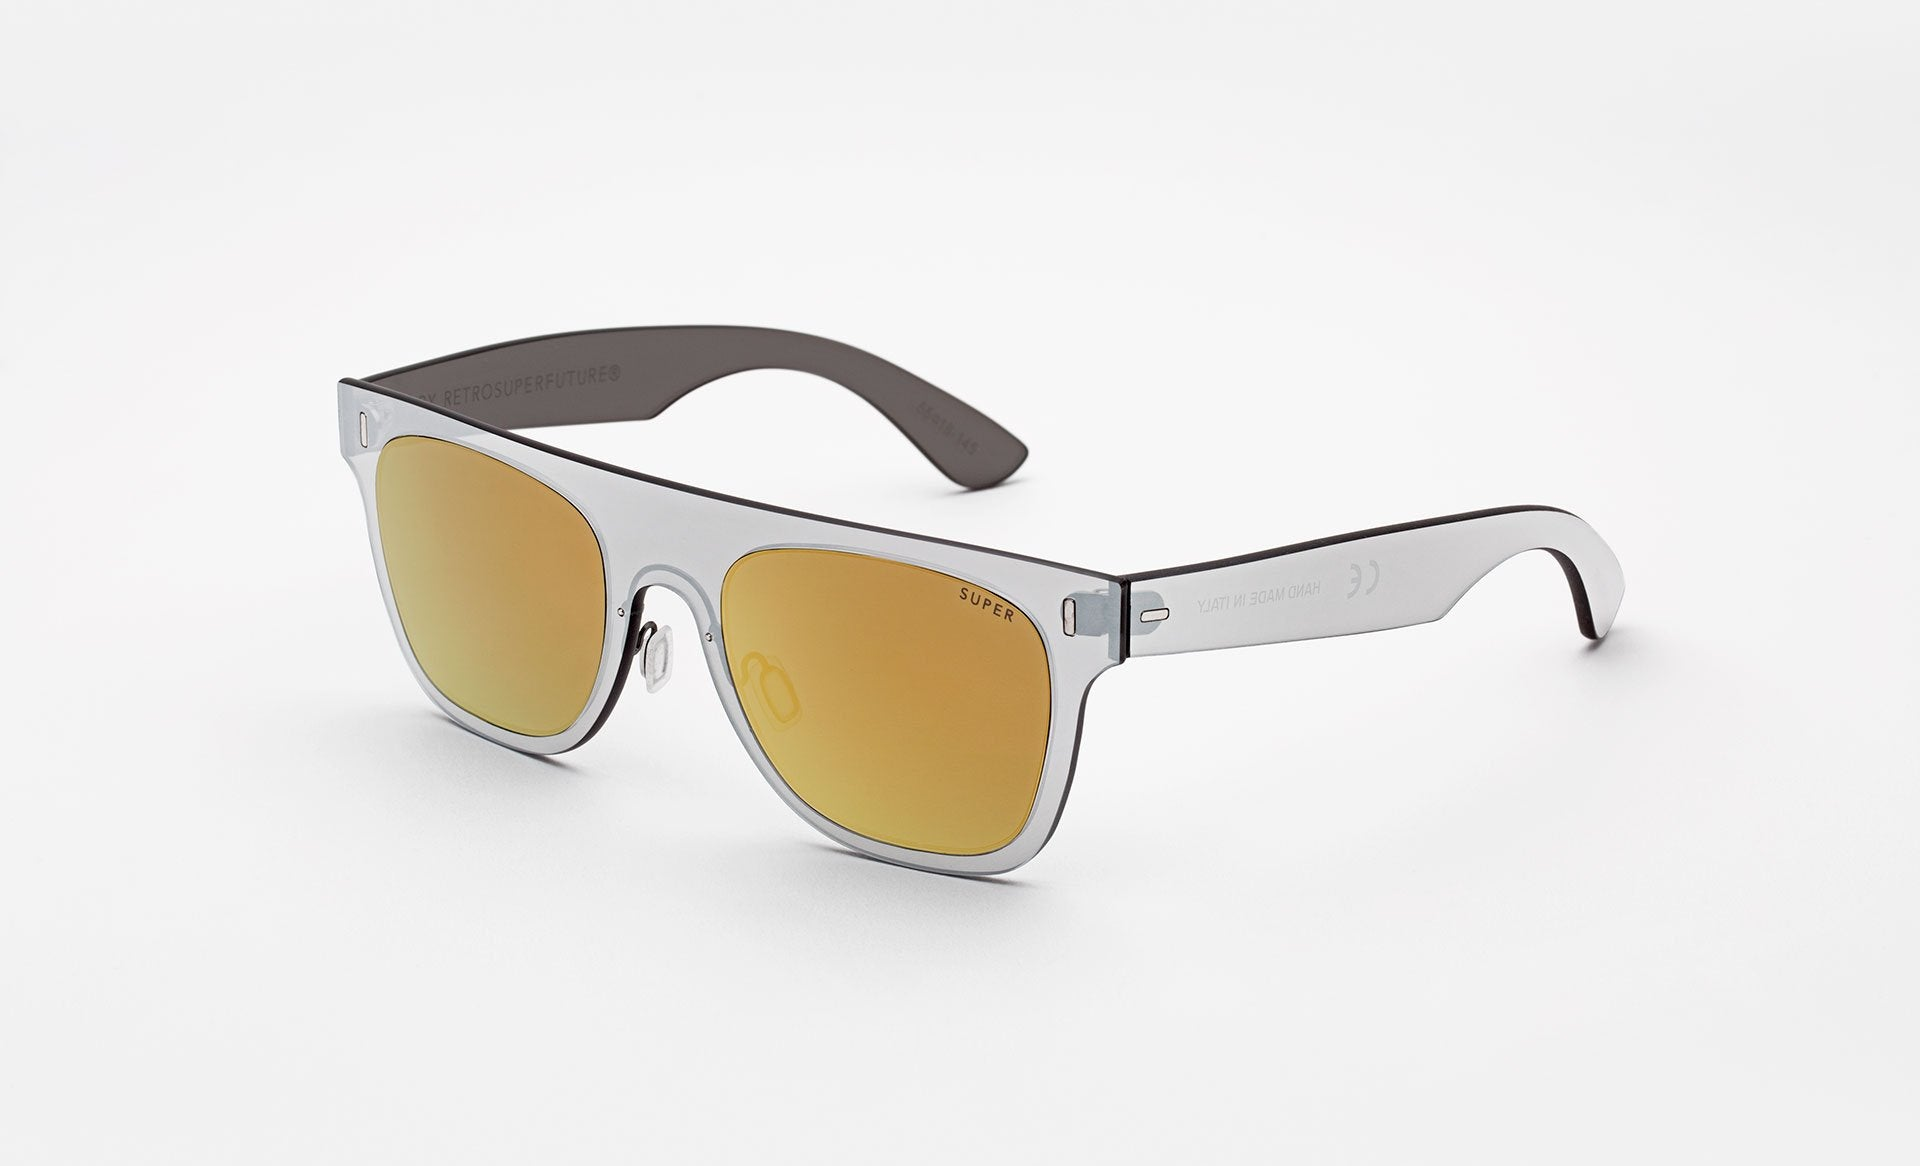 Super - Duo Lens Flat Top 55mm Silver Sunglasses / Gold Lenses